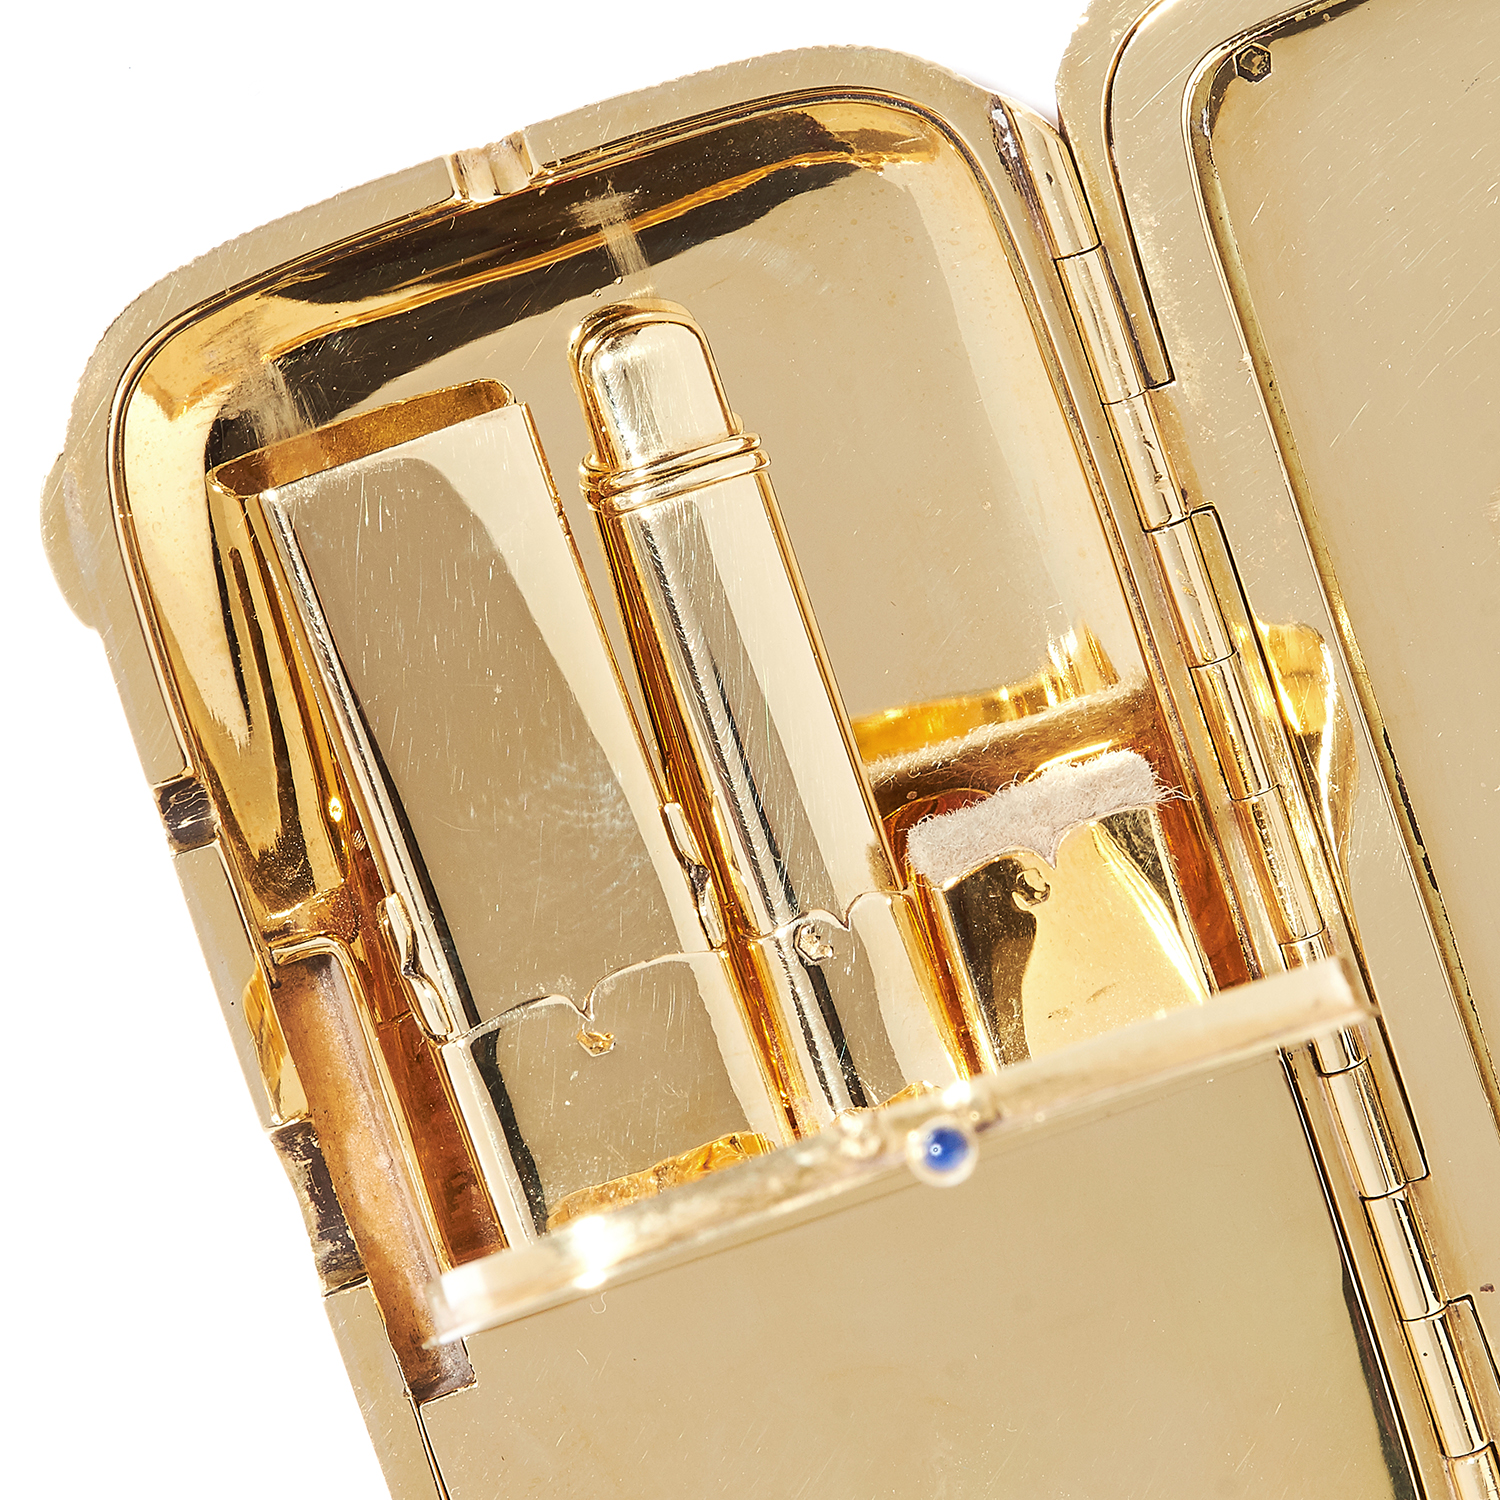 Los 45 - ANTIQUE SAPPHIRE COMPACT, CARTIER in 18ct yellow gold, in textured gold design with gold chain,